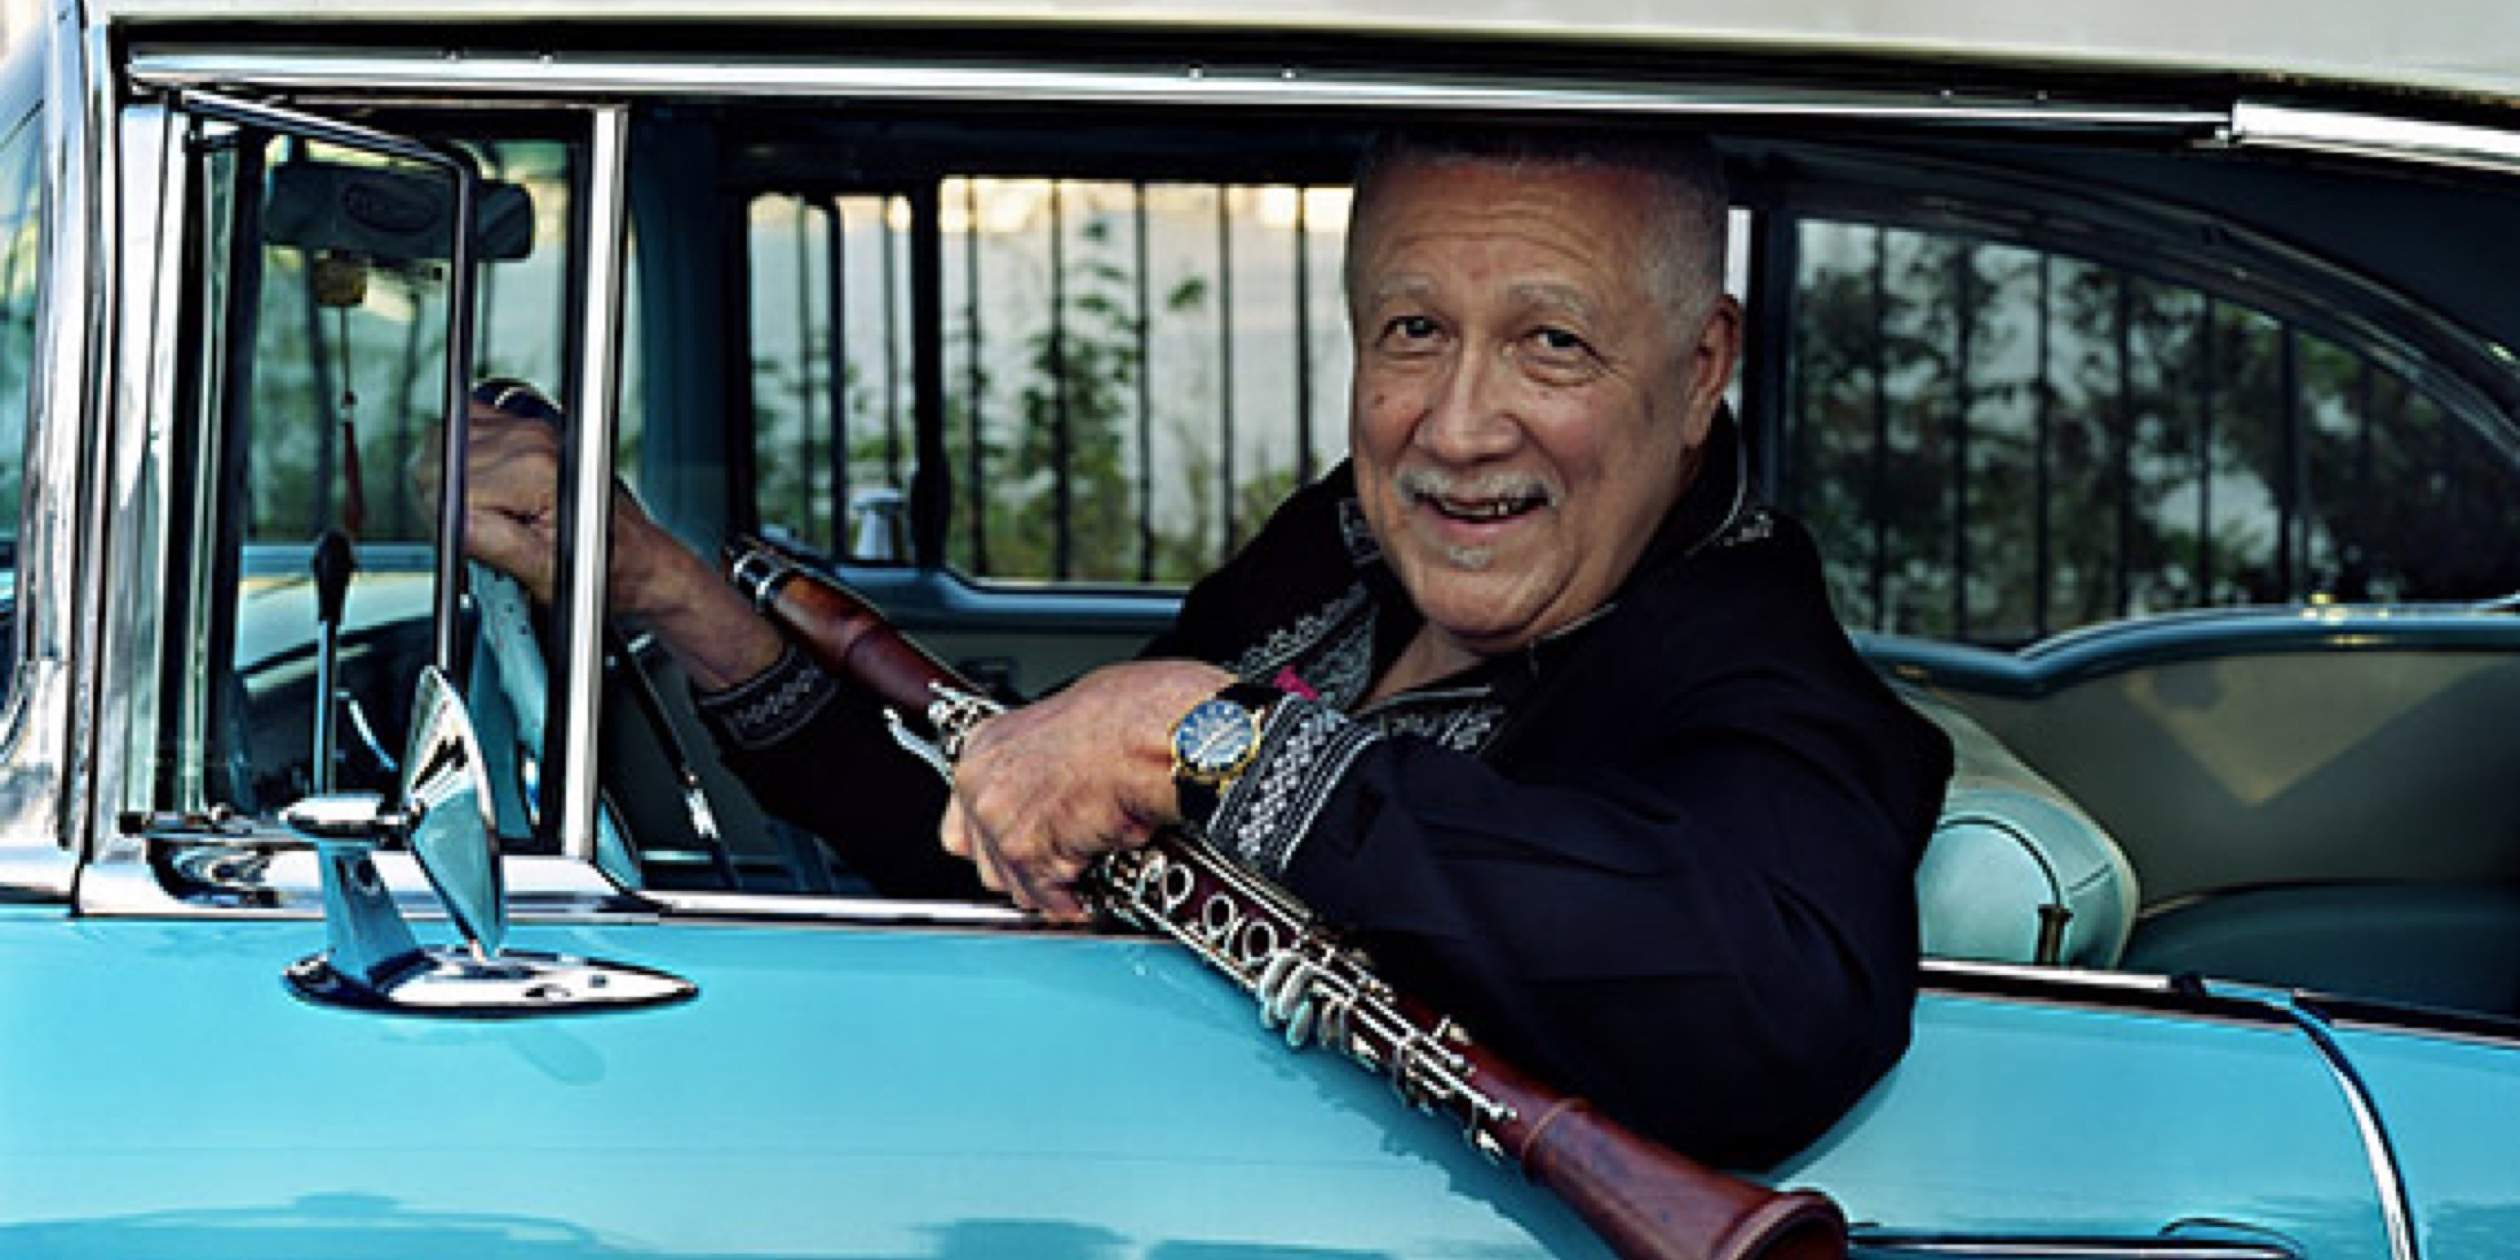 Musical Evening with Paquito D'Rivera | Thu, Nov 2, 6:30 pm